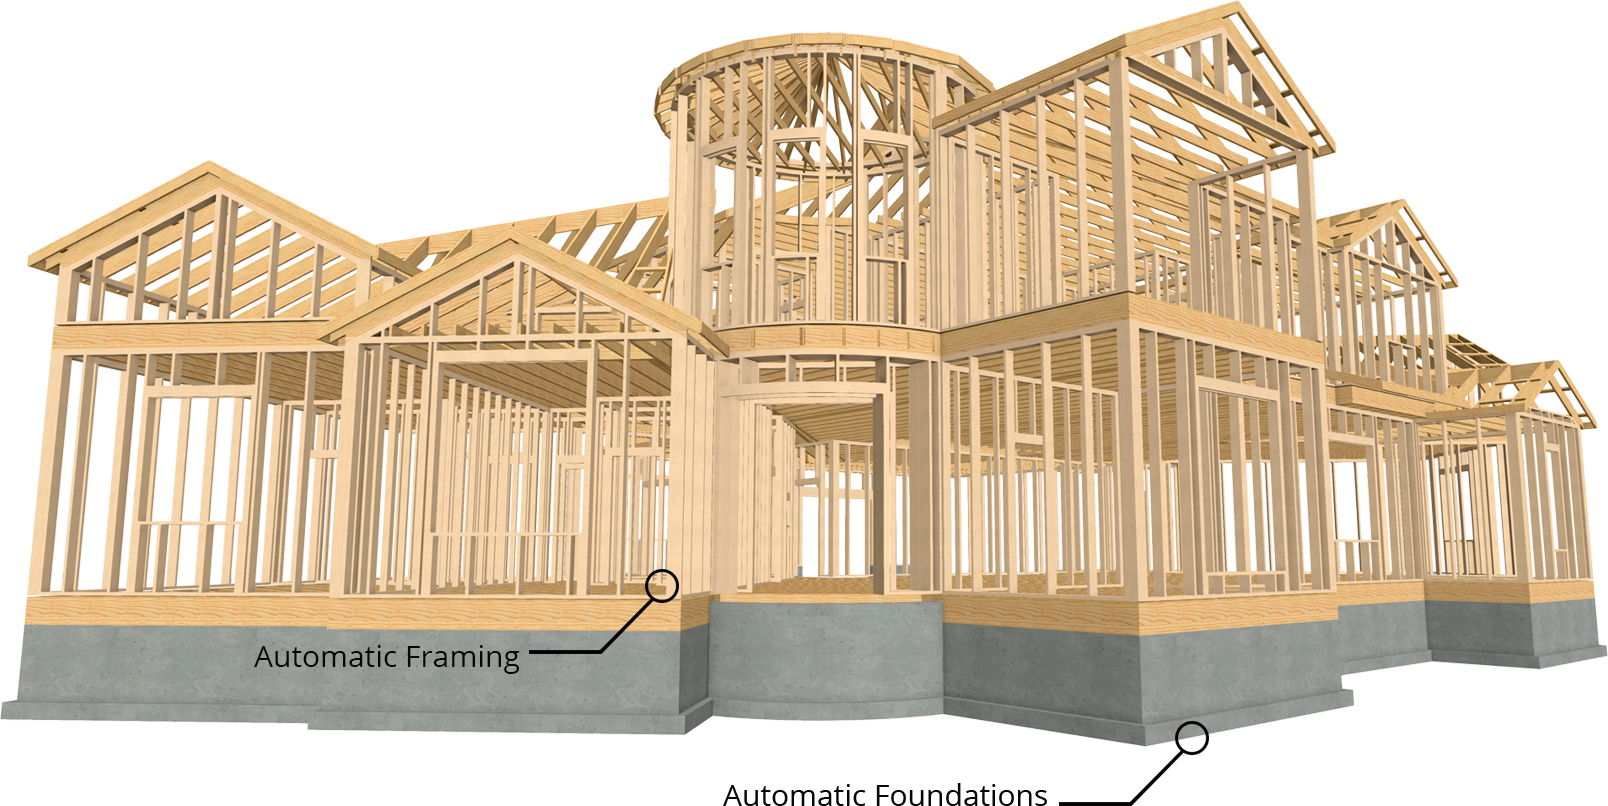 Automatic framing overview with an automatic foundation.